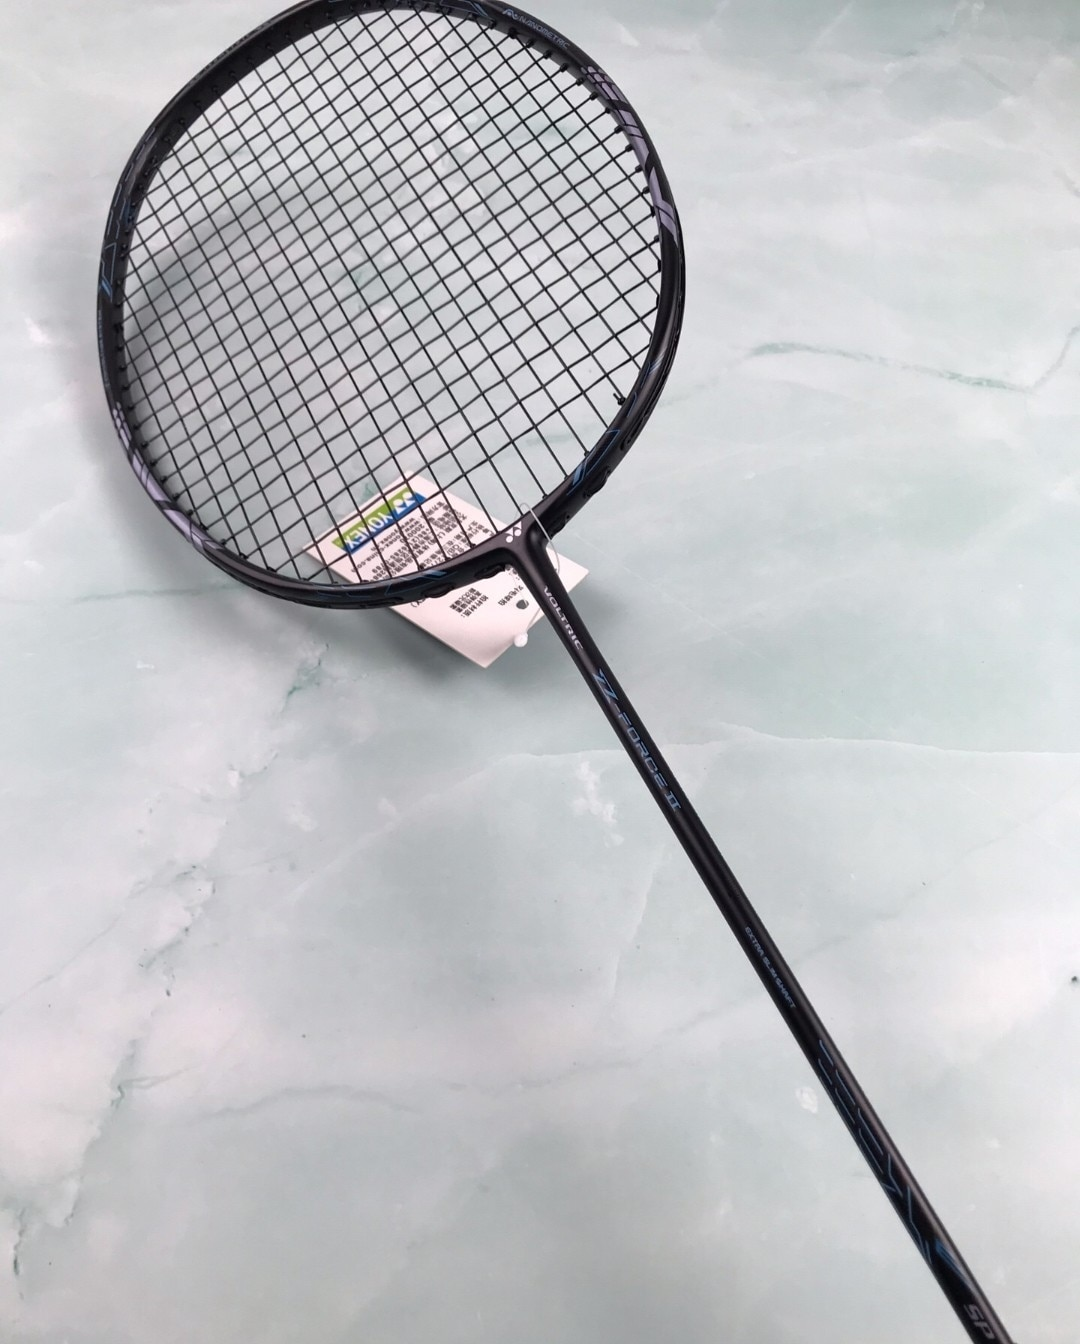 Yonex VTZ show off the new black 36T full carbon badminton racket